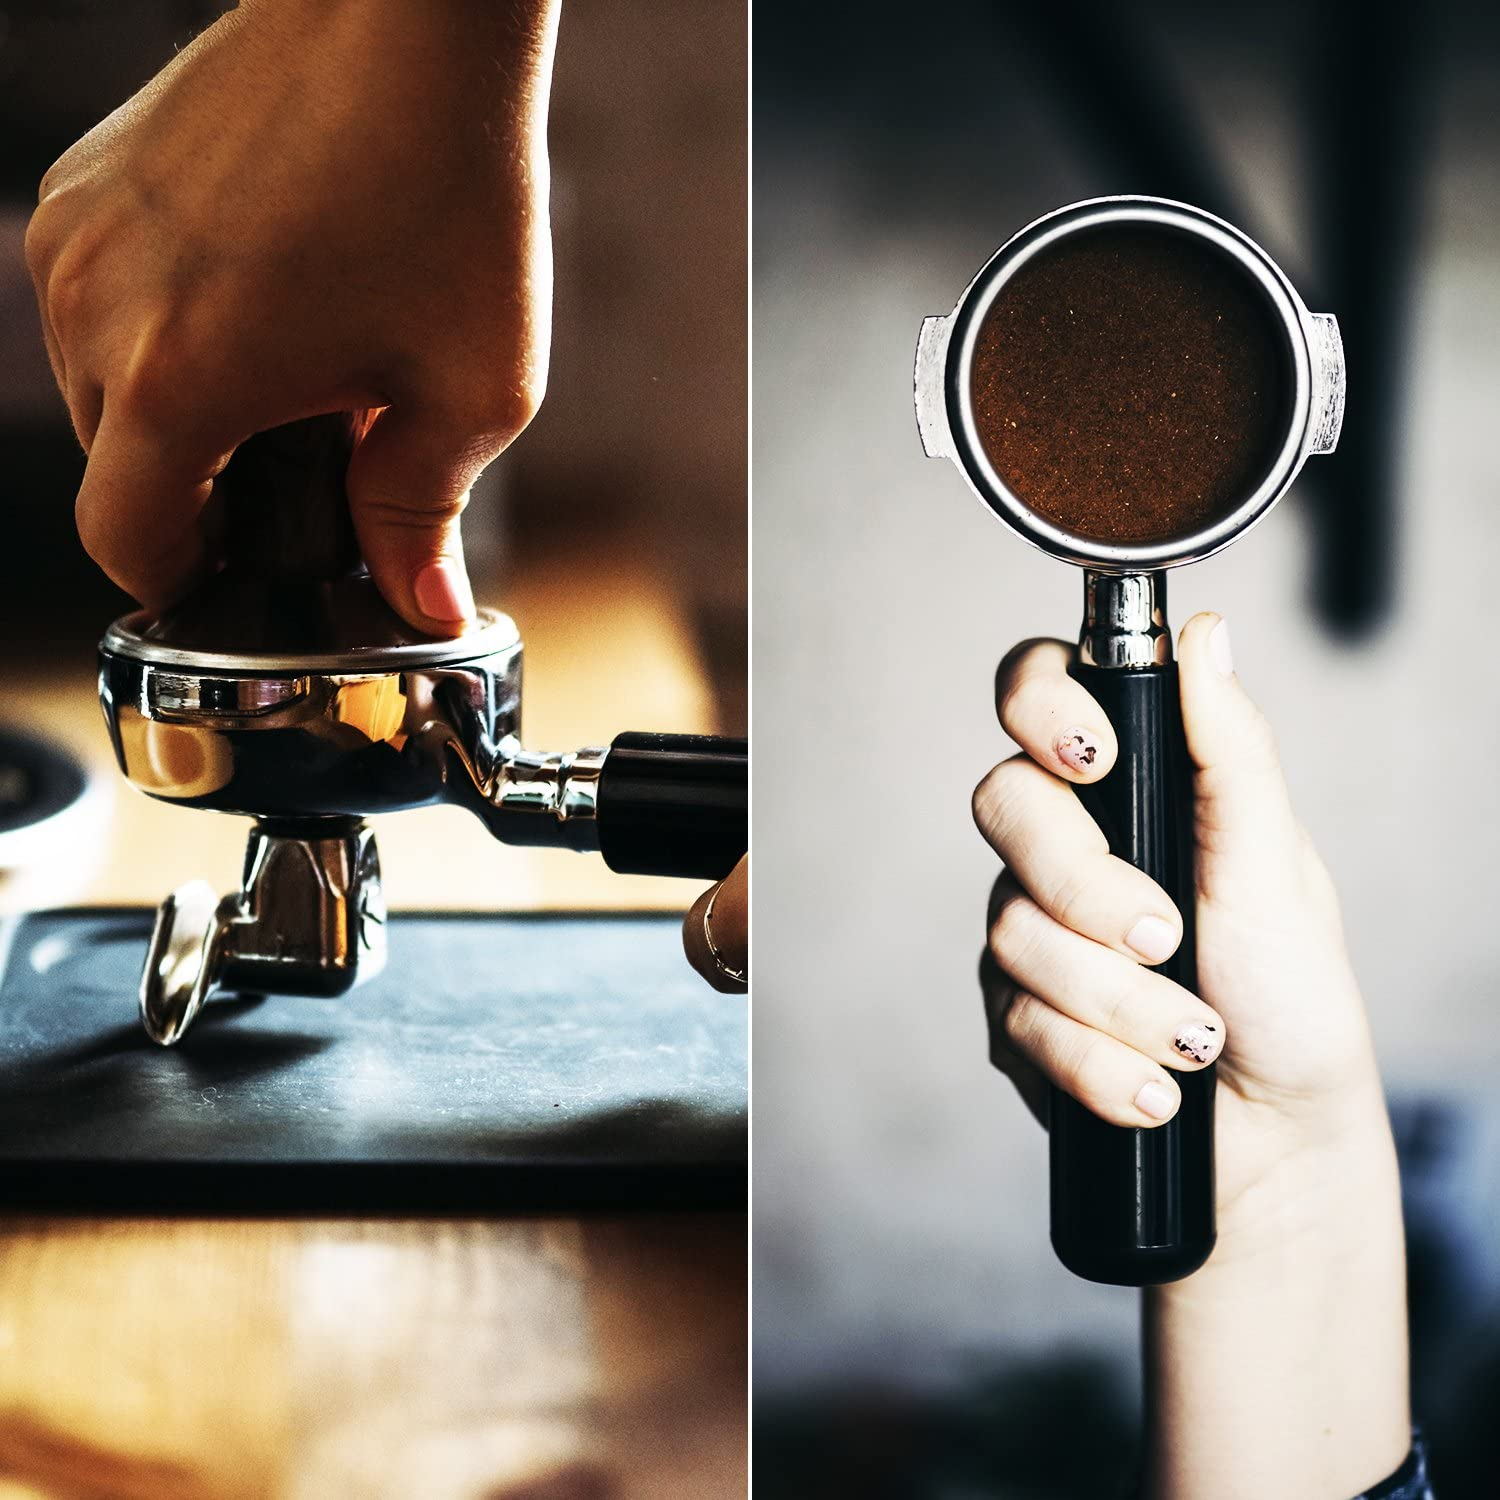 LuxHaus 51mm Calibrated Pressure Tamper for Coffee and Espresso